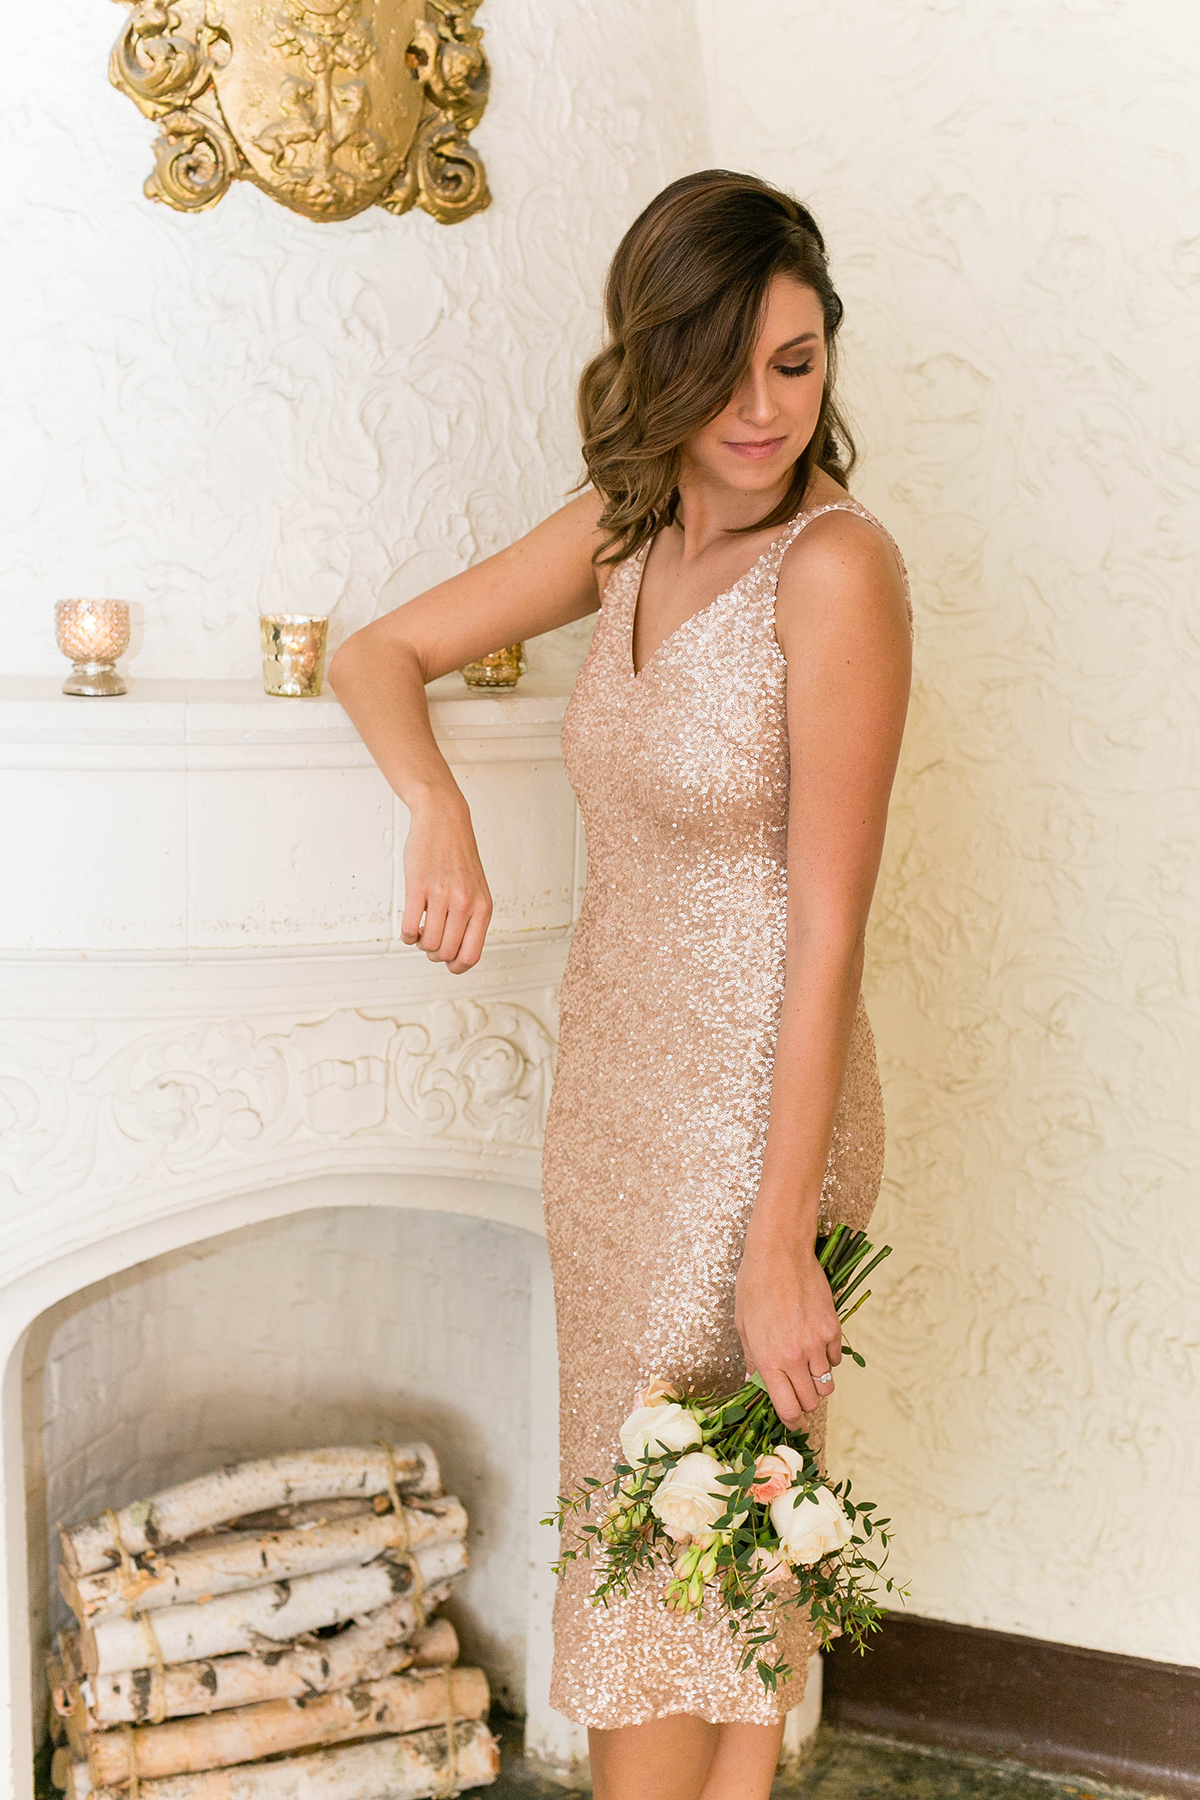 View More: http://emiliajane.pass.us/aisle-society-brideside